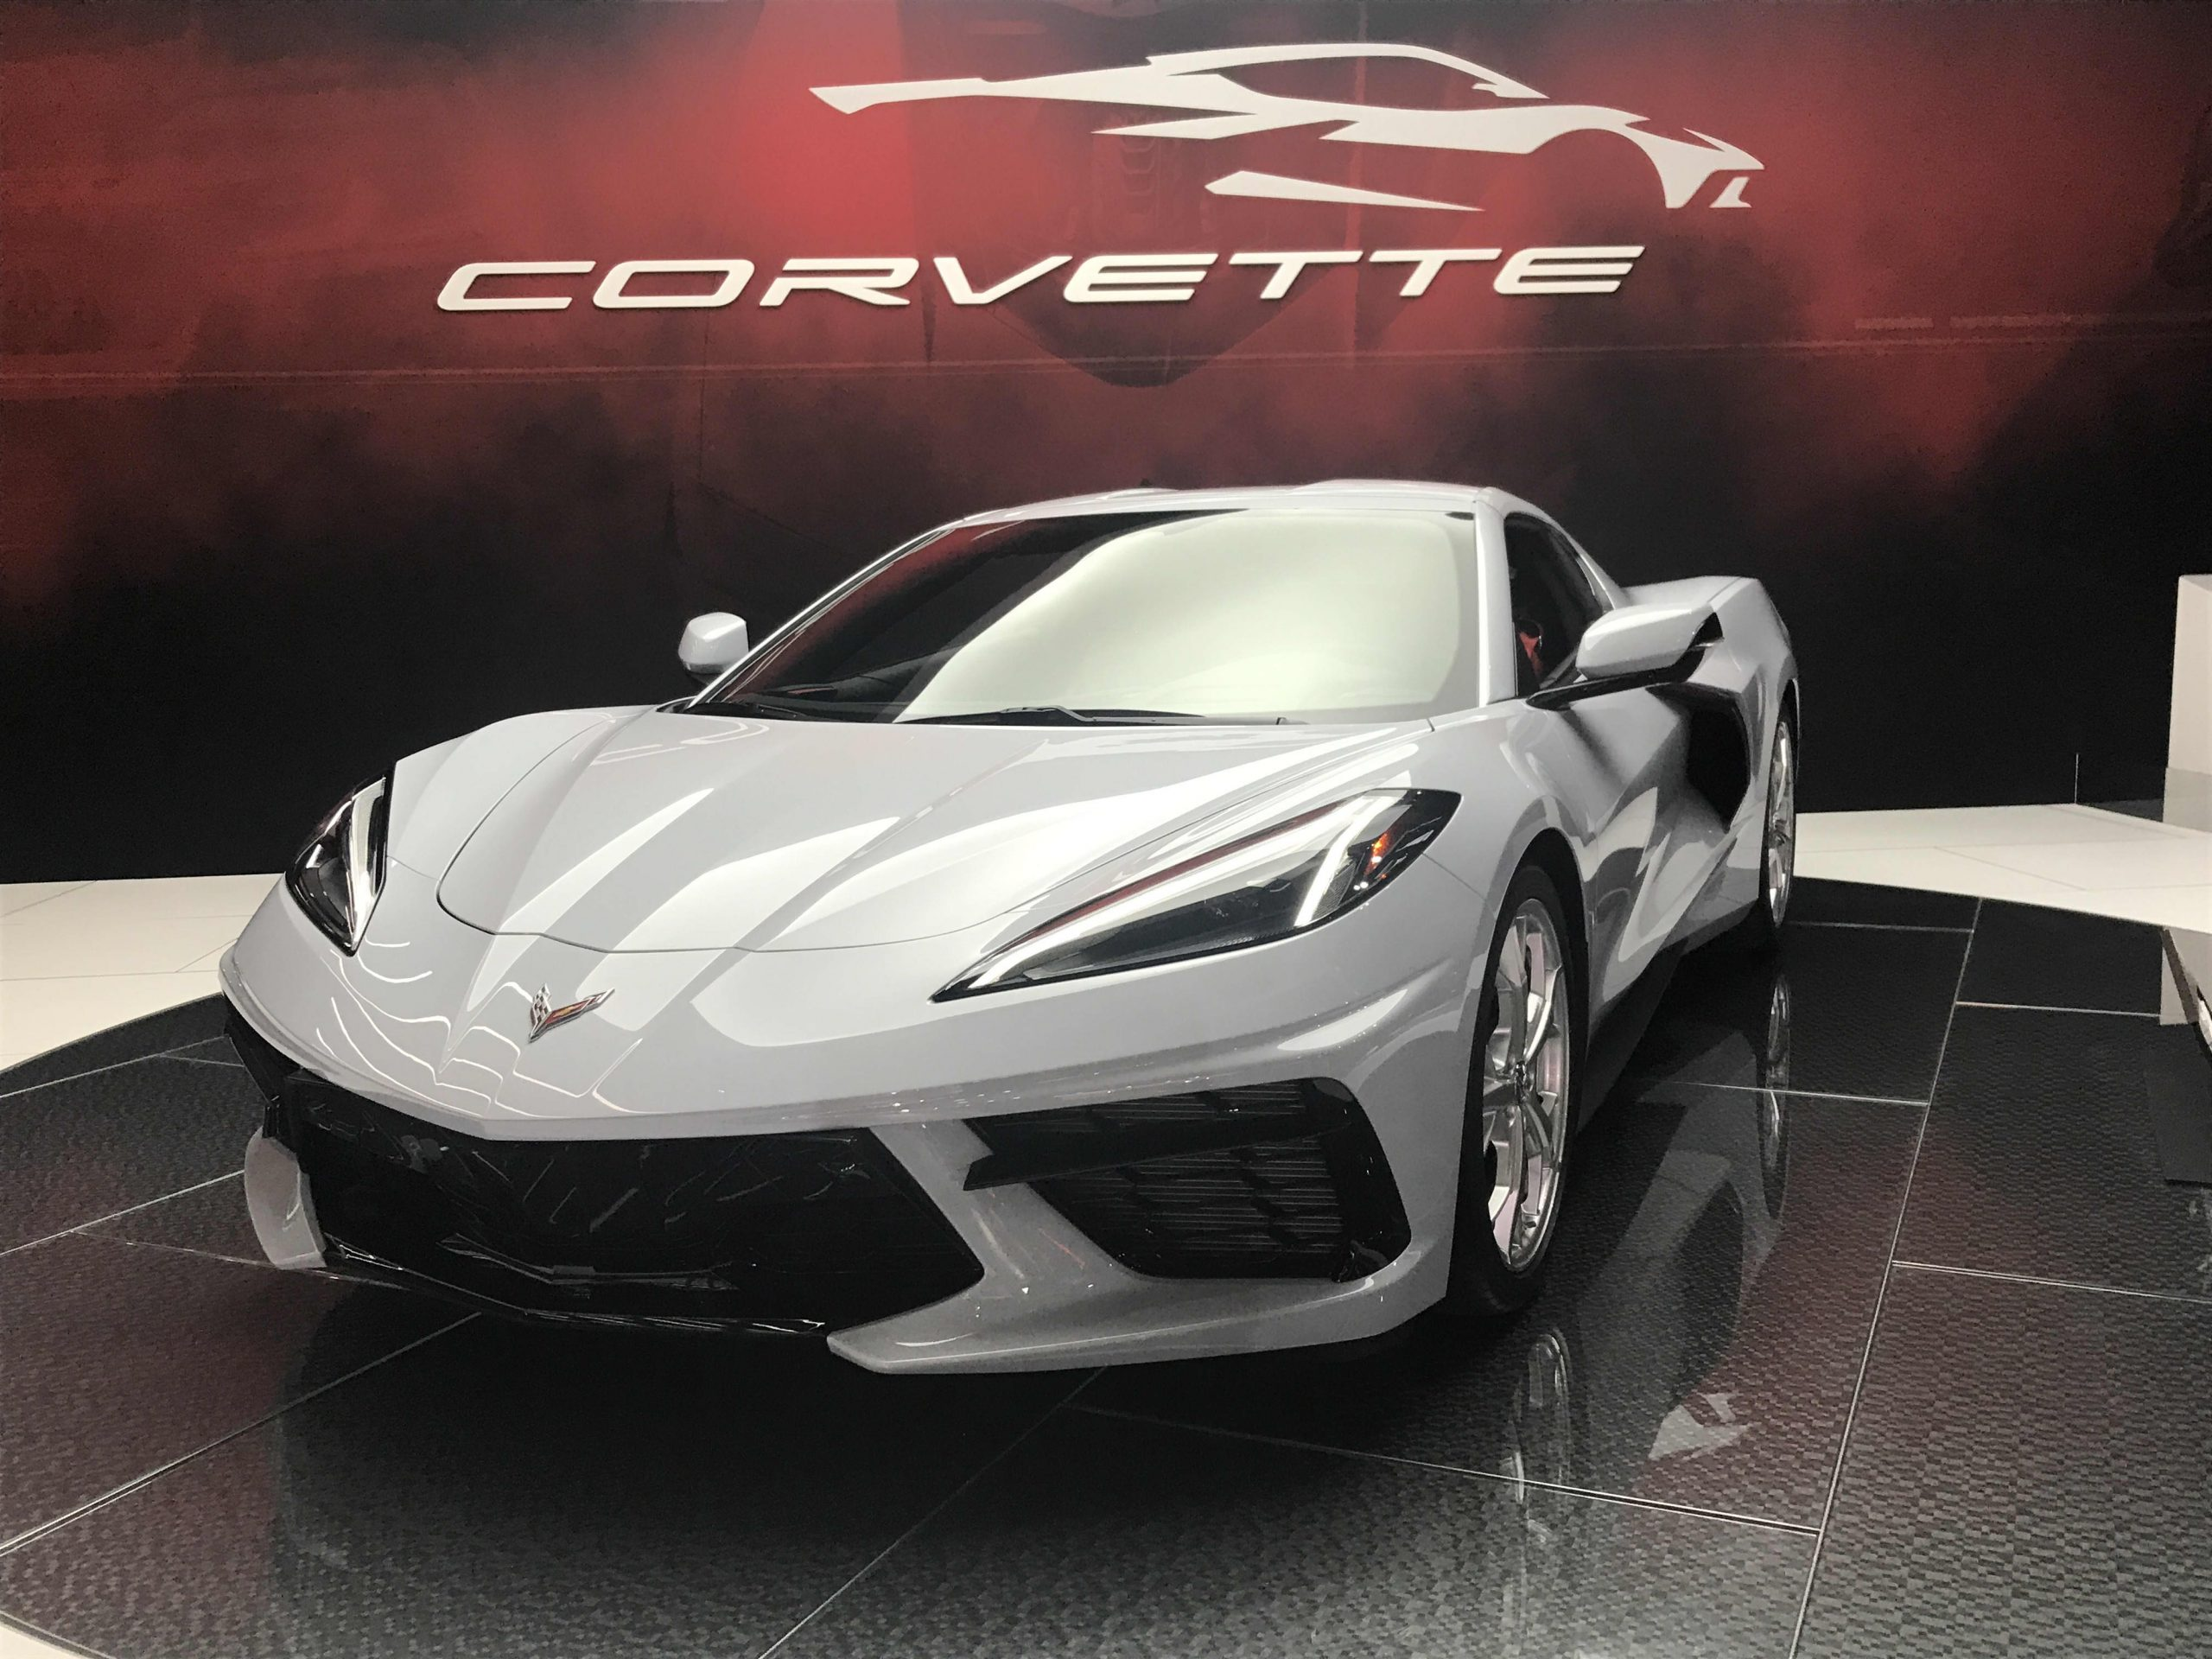 GM could increase Corvette lineup to incorporate a crossover SUV